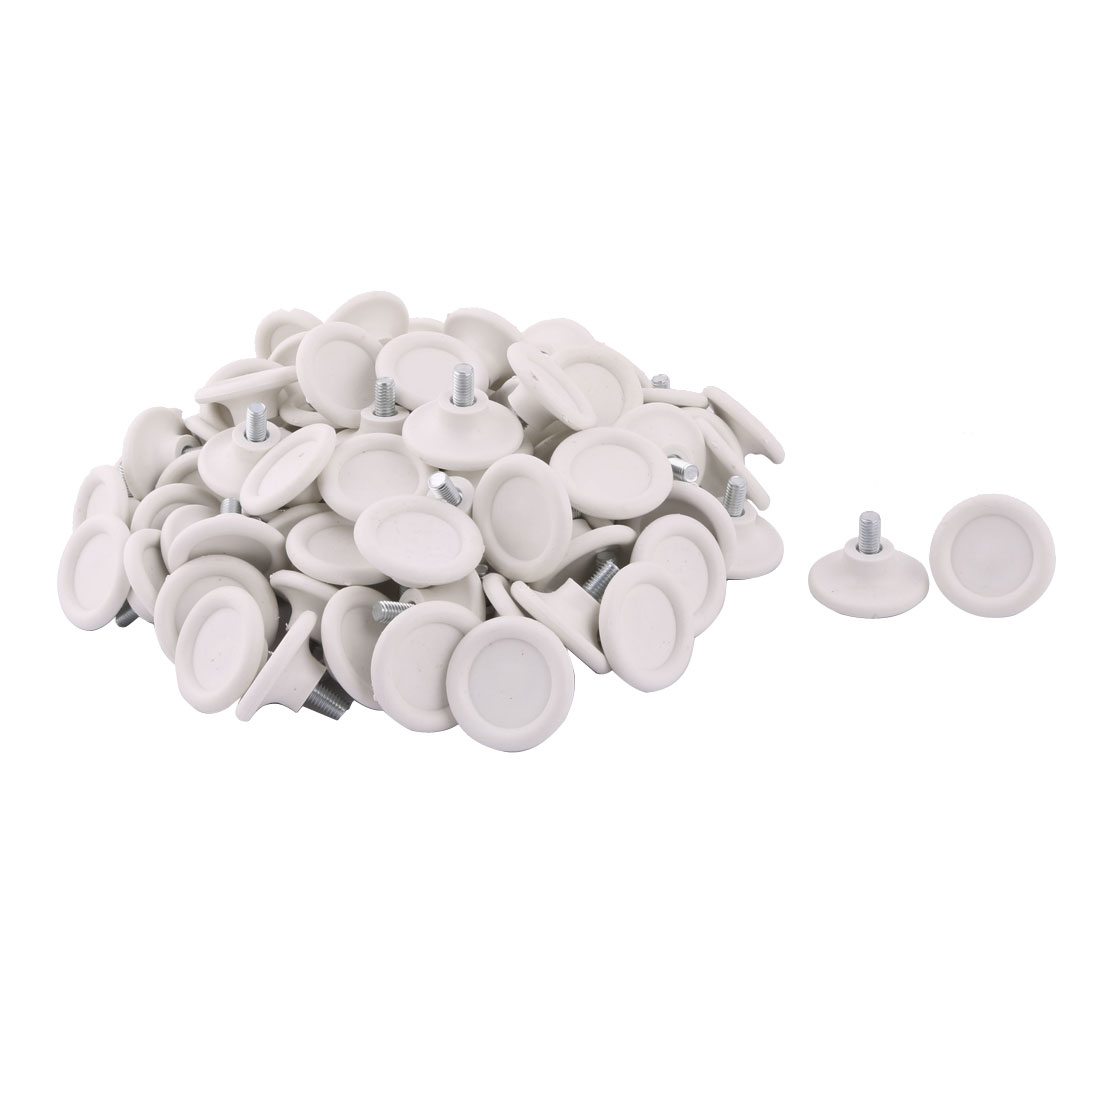 Office Plastic Base Adjustable Furniture Leveling Foot White Silver Tone 45mm Dia 100pcs